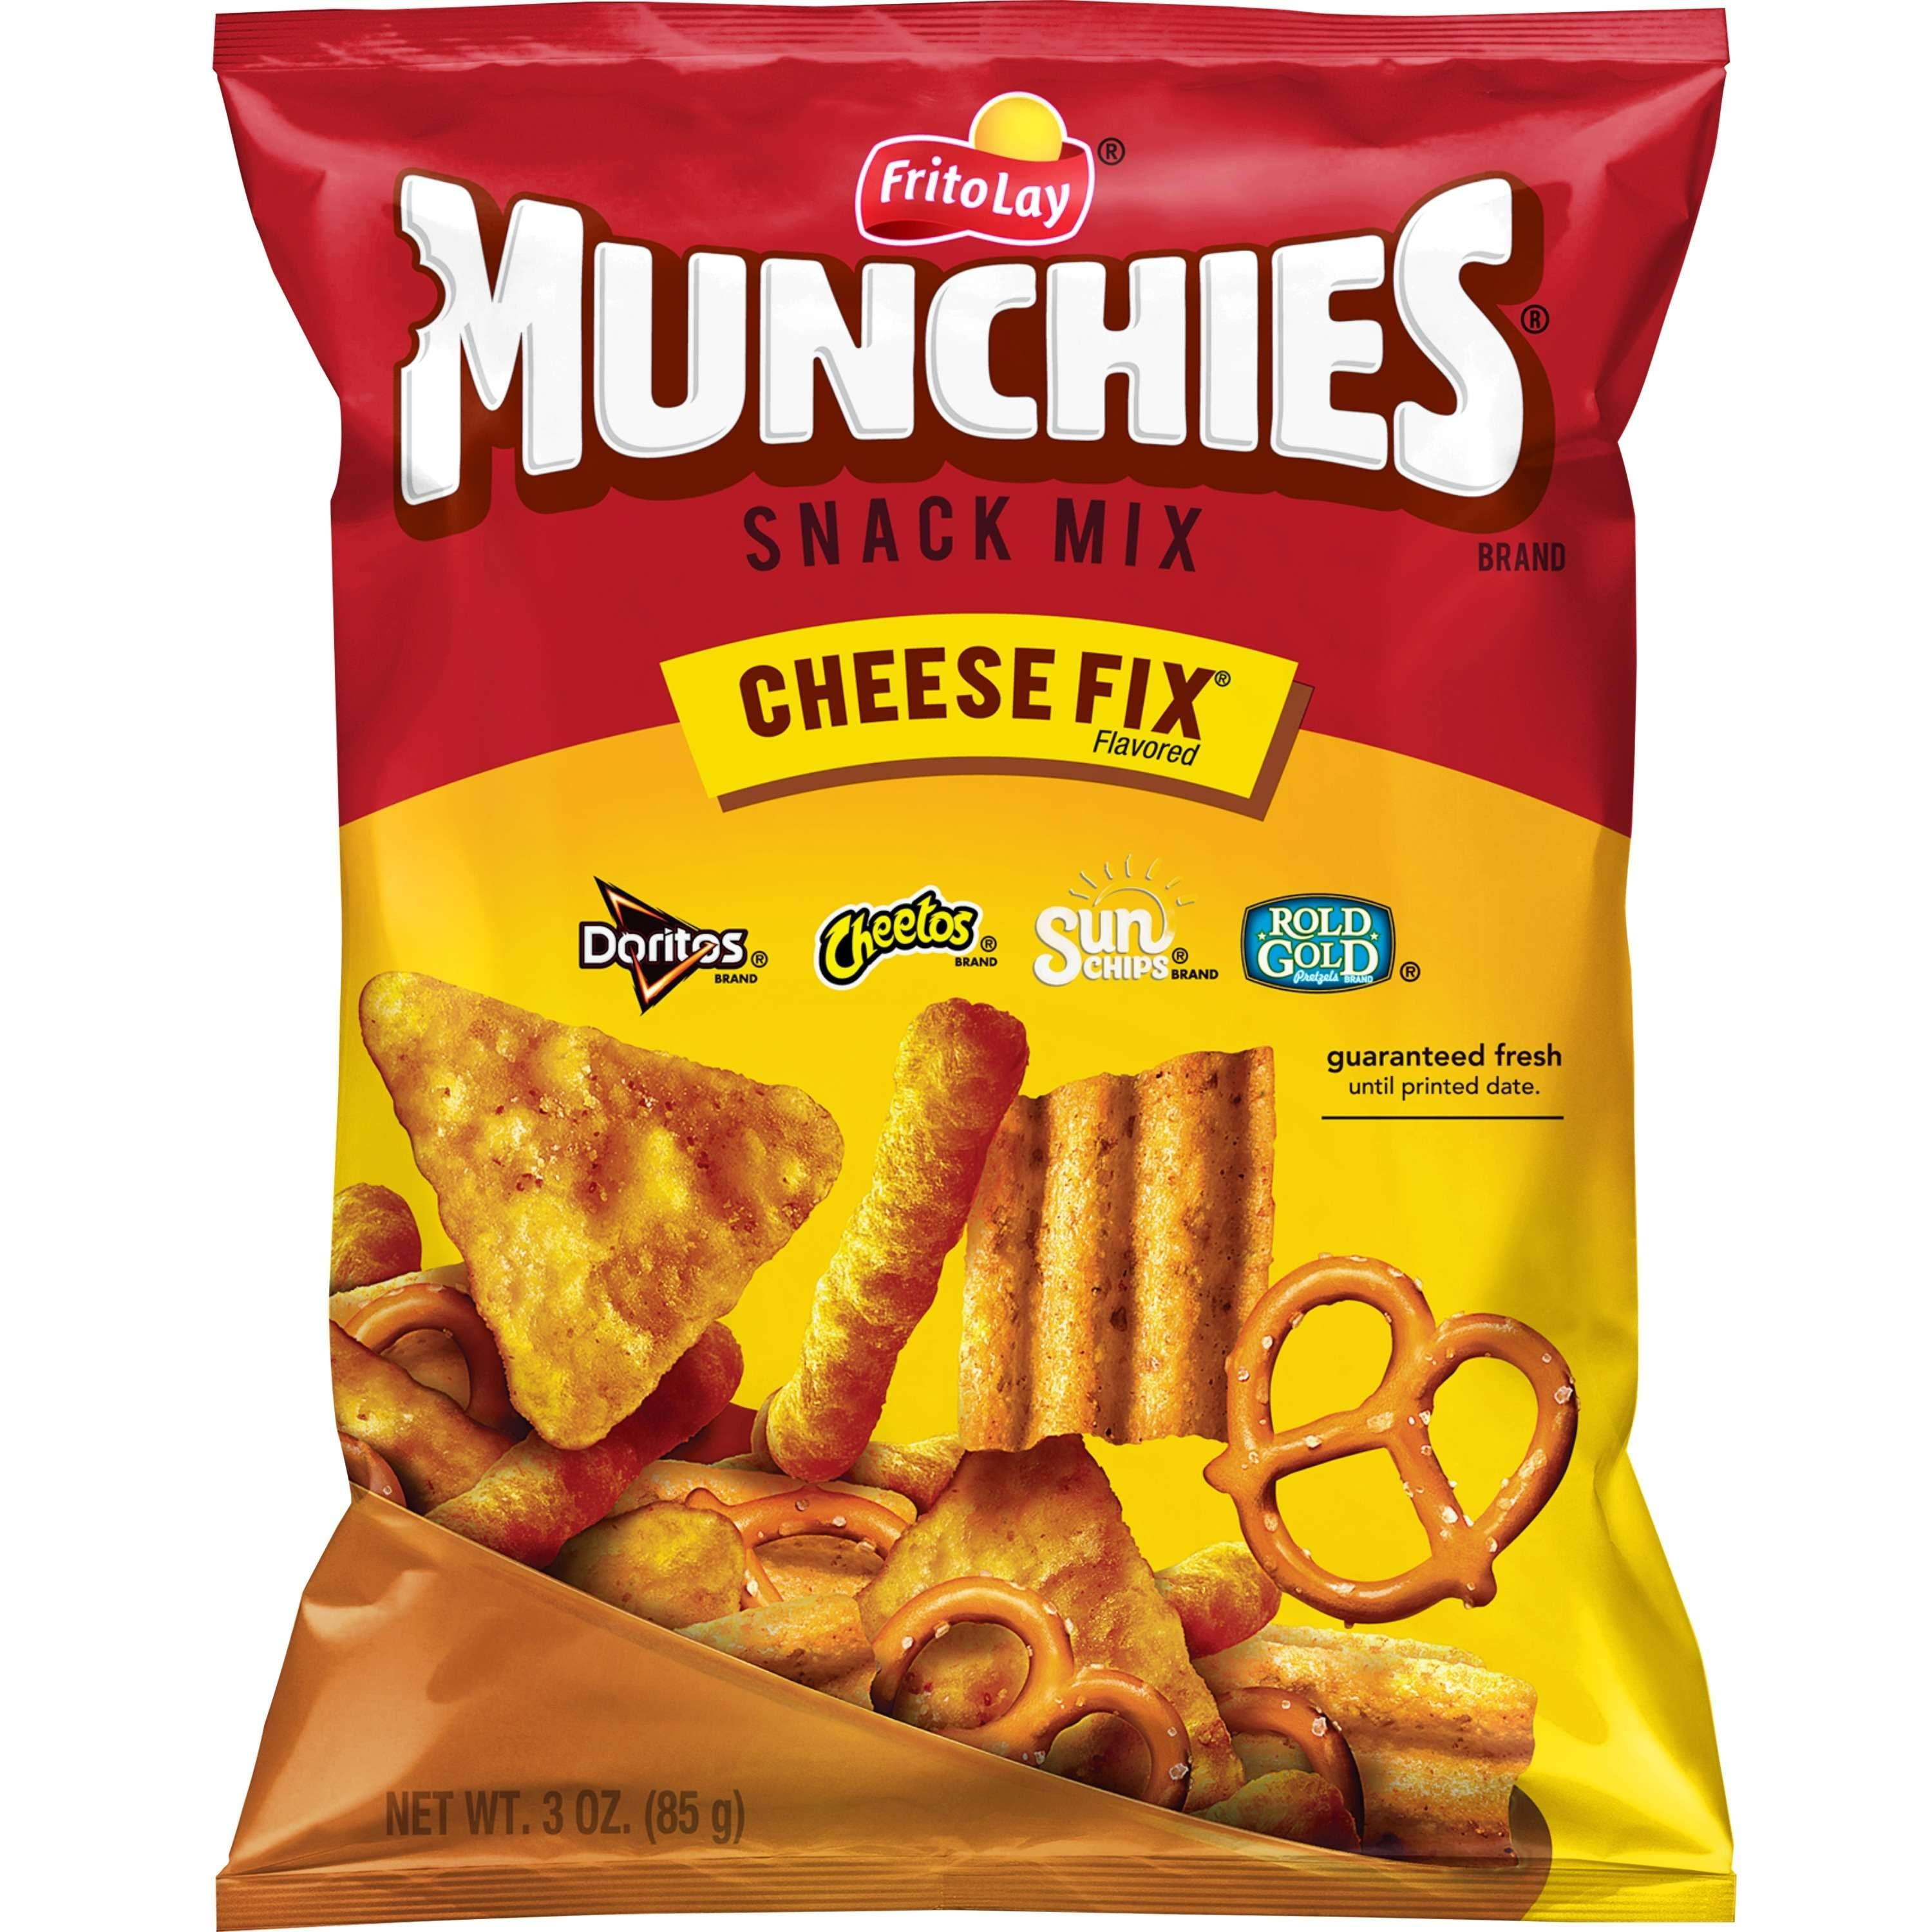 Munchies Snack Mix - Cheese Fix Flavored, 3oz